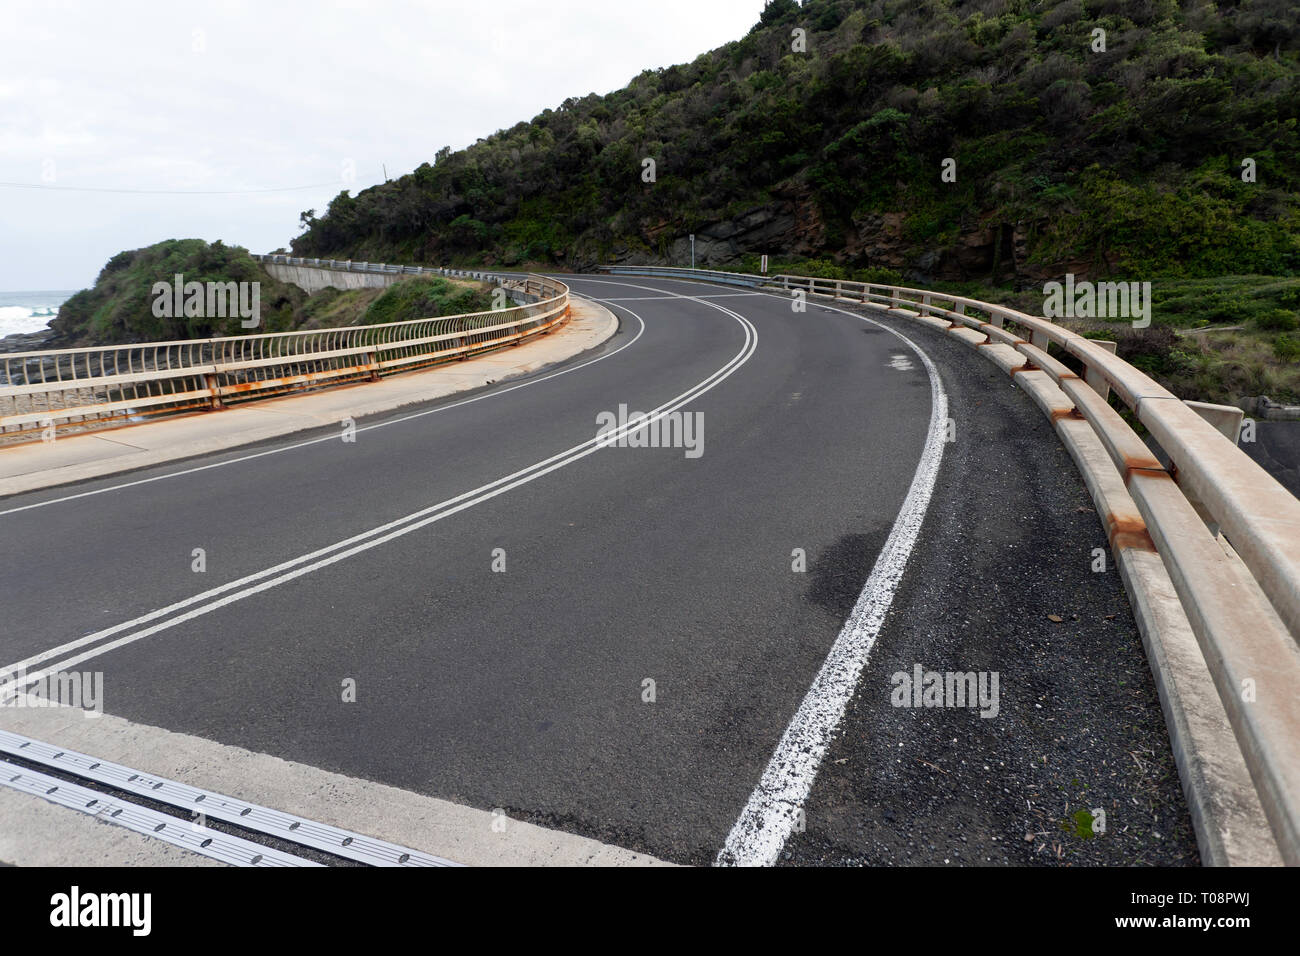 A Section of the Great Ocean Road, Victoria, Australia Stock Photo